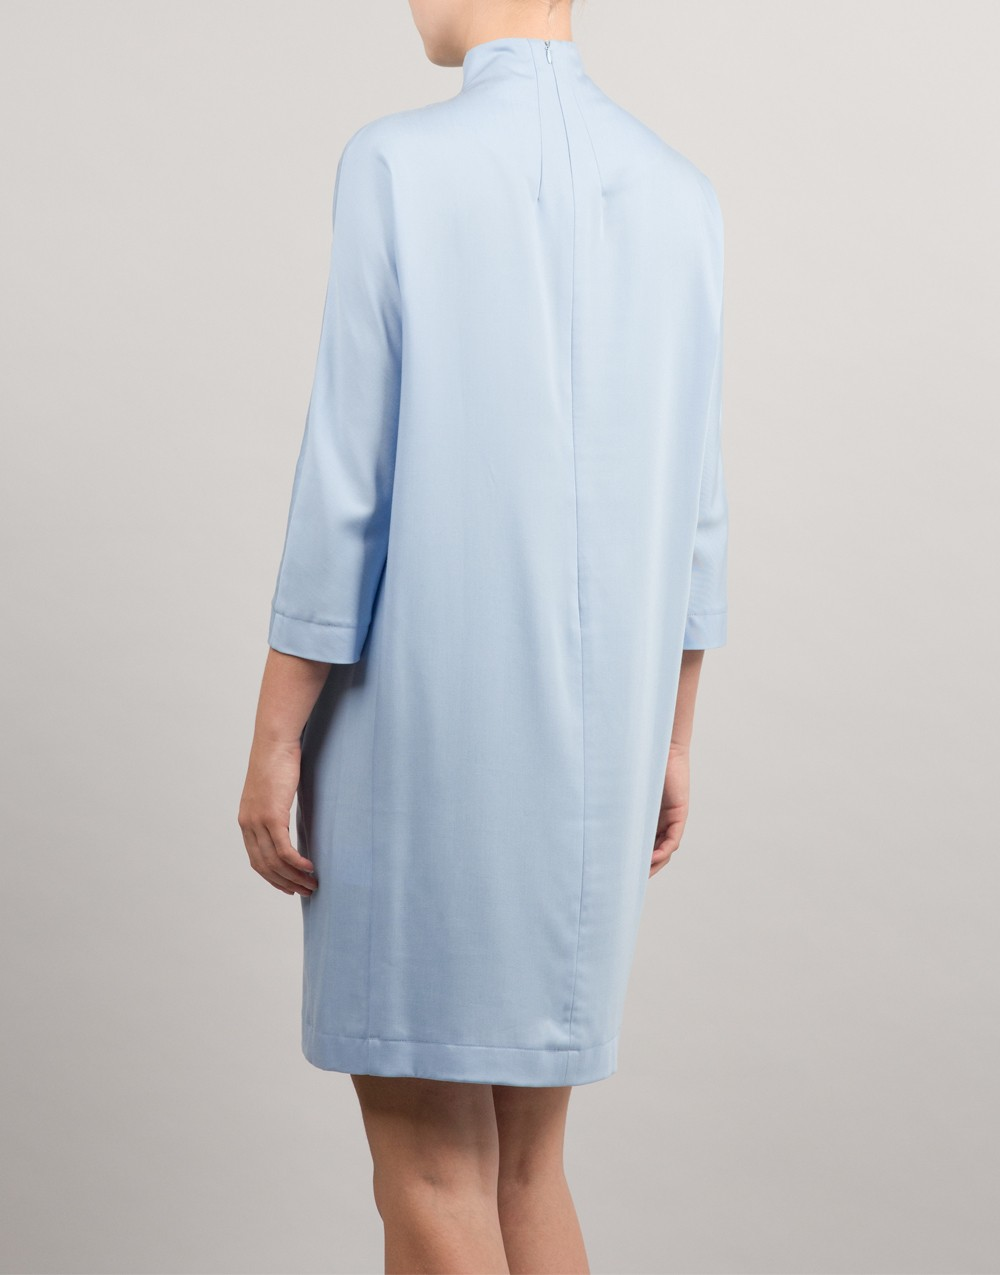 FoA. Jenni Dress